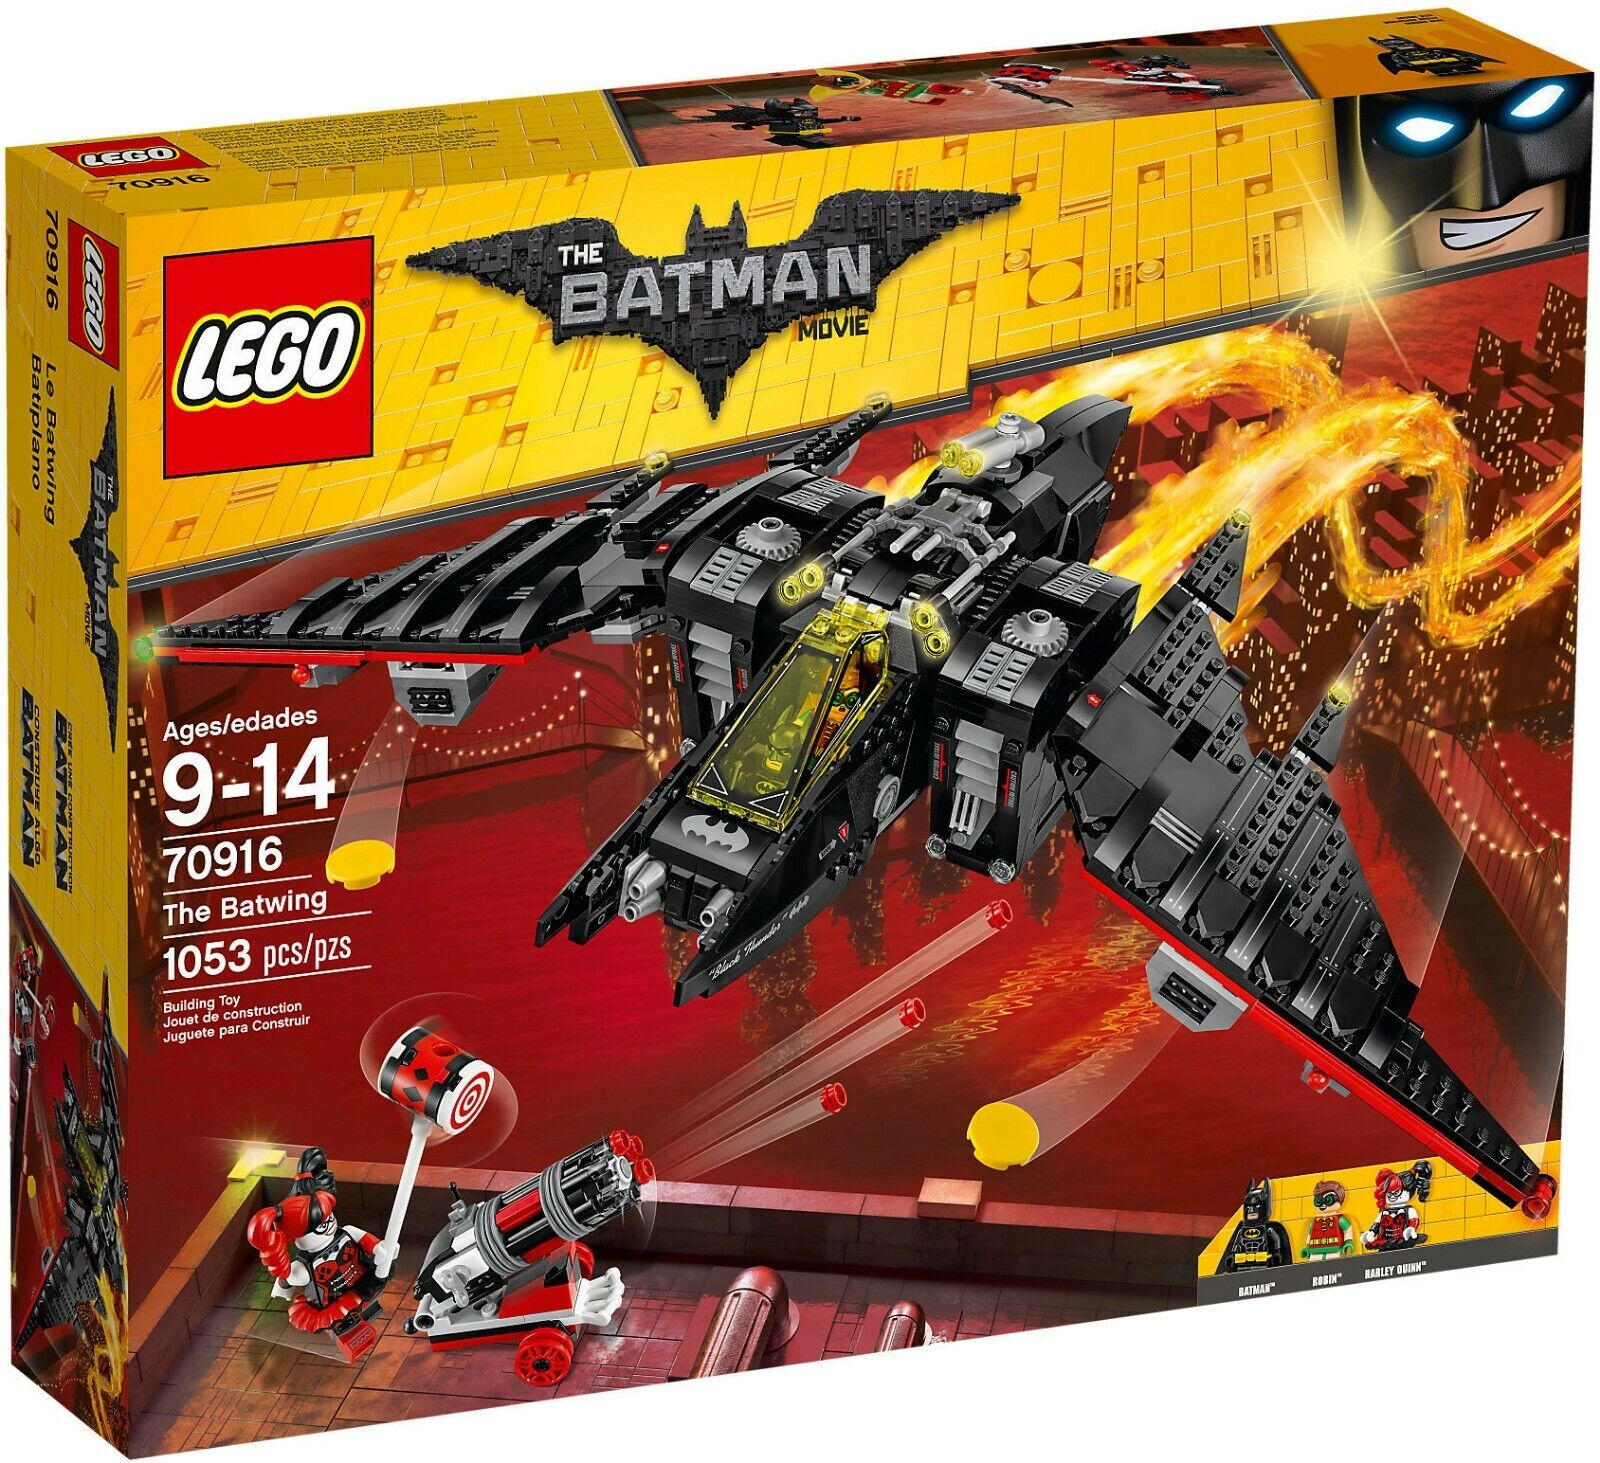 LEGO THE BATMAN MOVIE SUPER HEROES 70916 IL BATWING NUOVO Misb